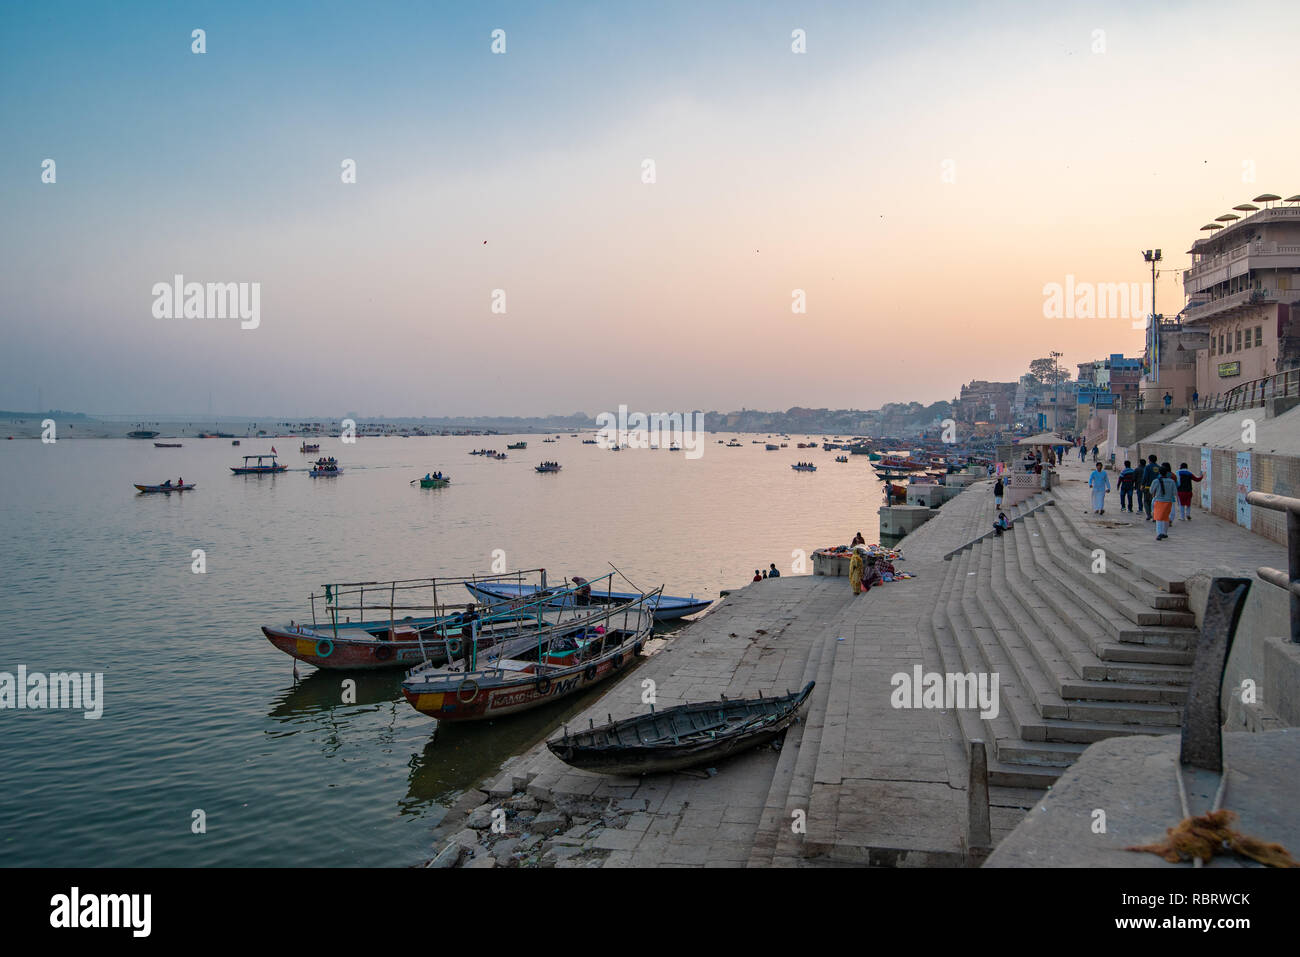 Boats at blue hour after sunset along the Ganges Ghat in Varanasi, India - Stock Image